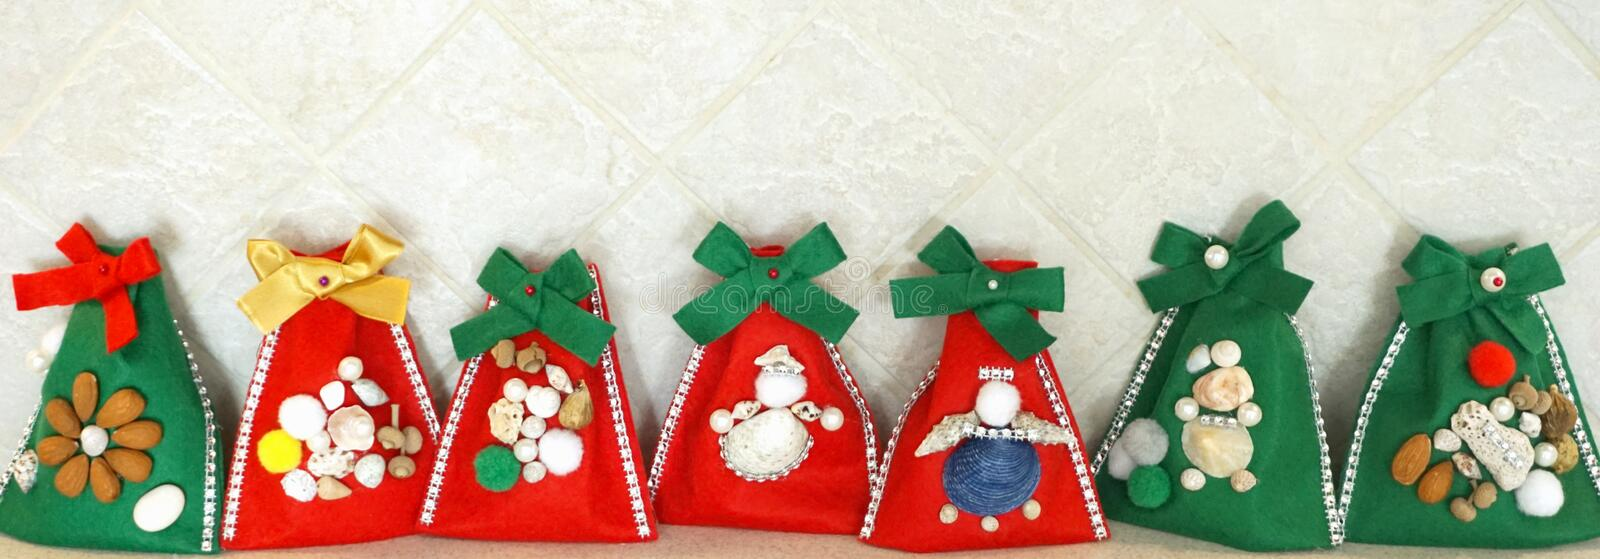 Christmas handmade crafted felt gift bags in line. Christmas homemade green and red felt gift bags in line, decorated with little things royalty free stock photography